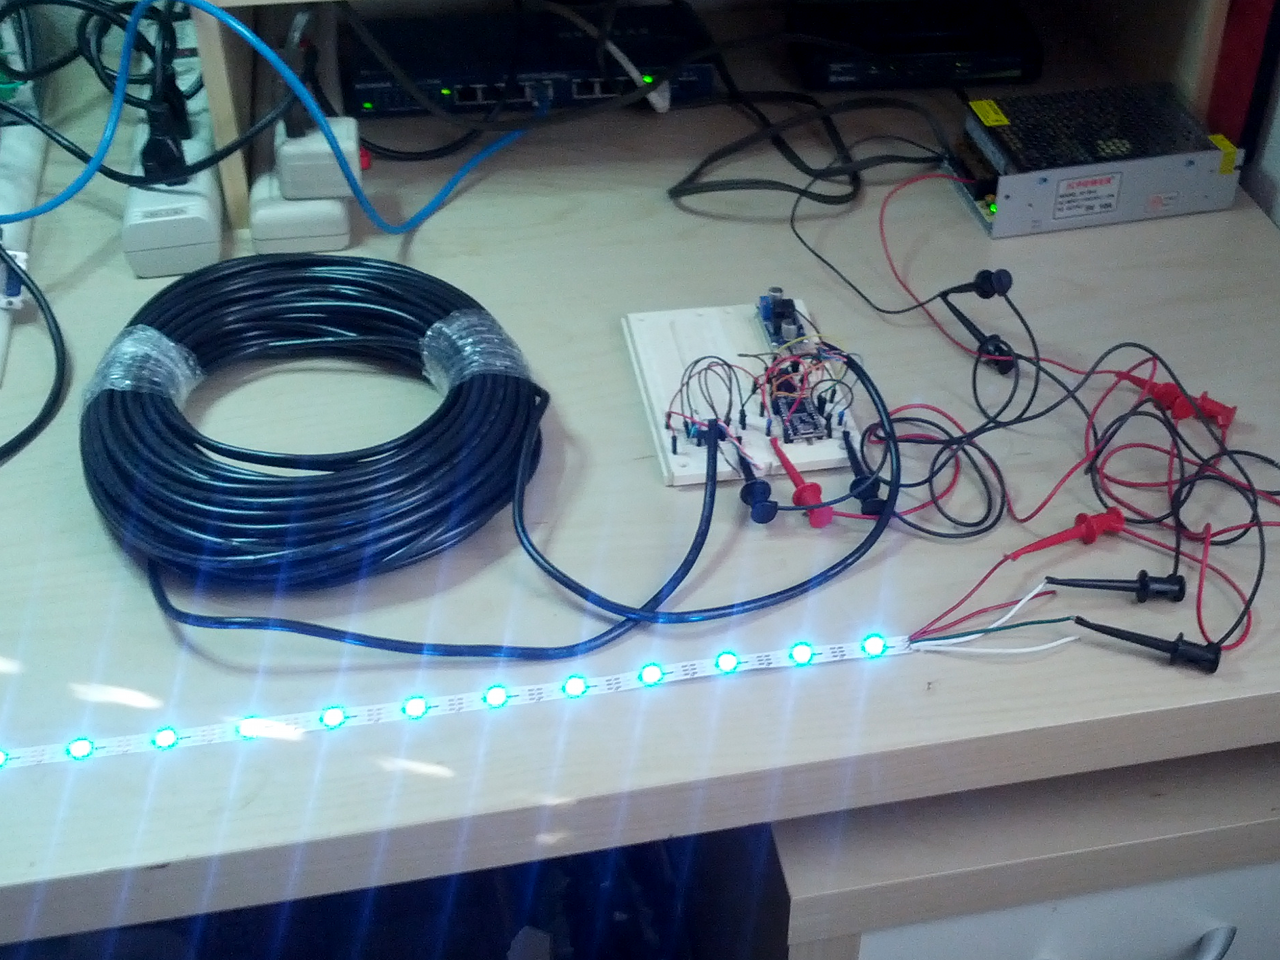 Teknynja: Driving WS2812/NeoPixels RGB LEDS over CAT5 Ethernet Cable